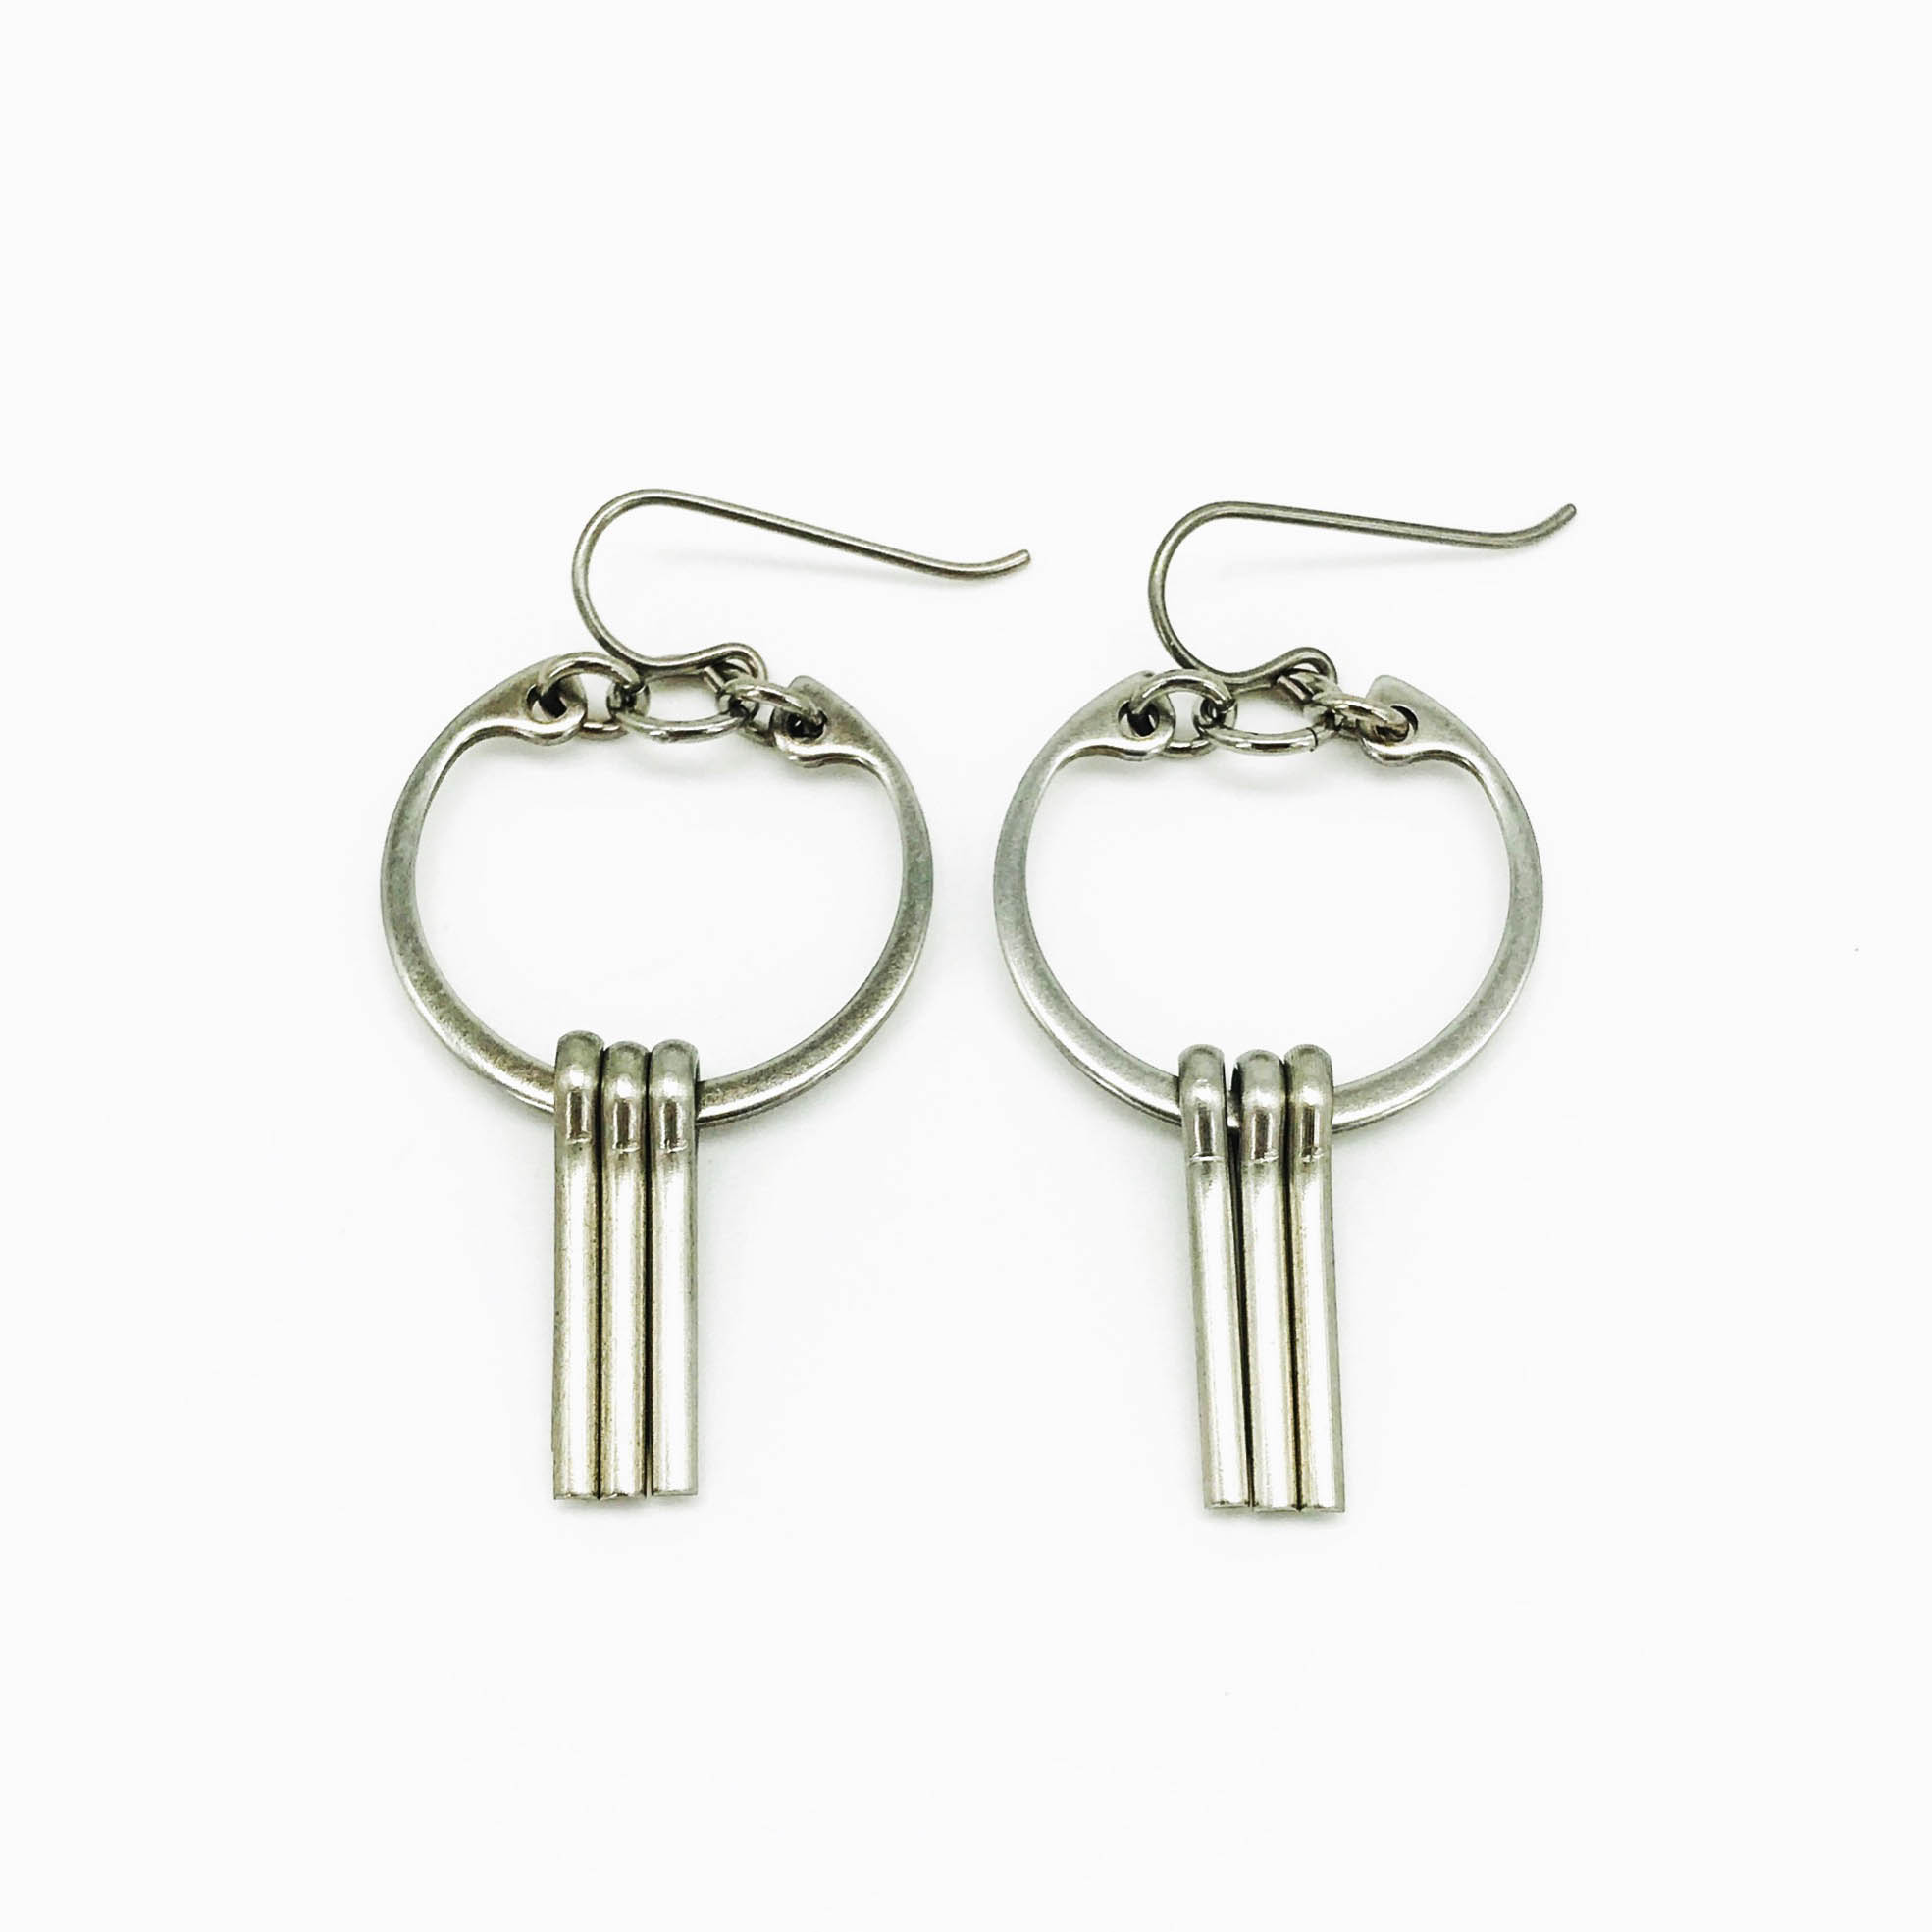 Centro earrings, stainless steel ring and pins with niobium earwires, $50